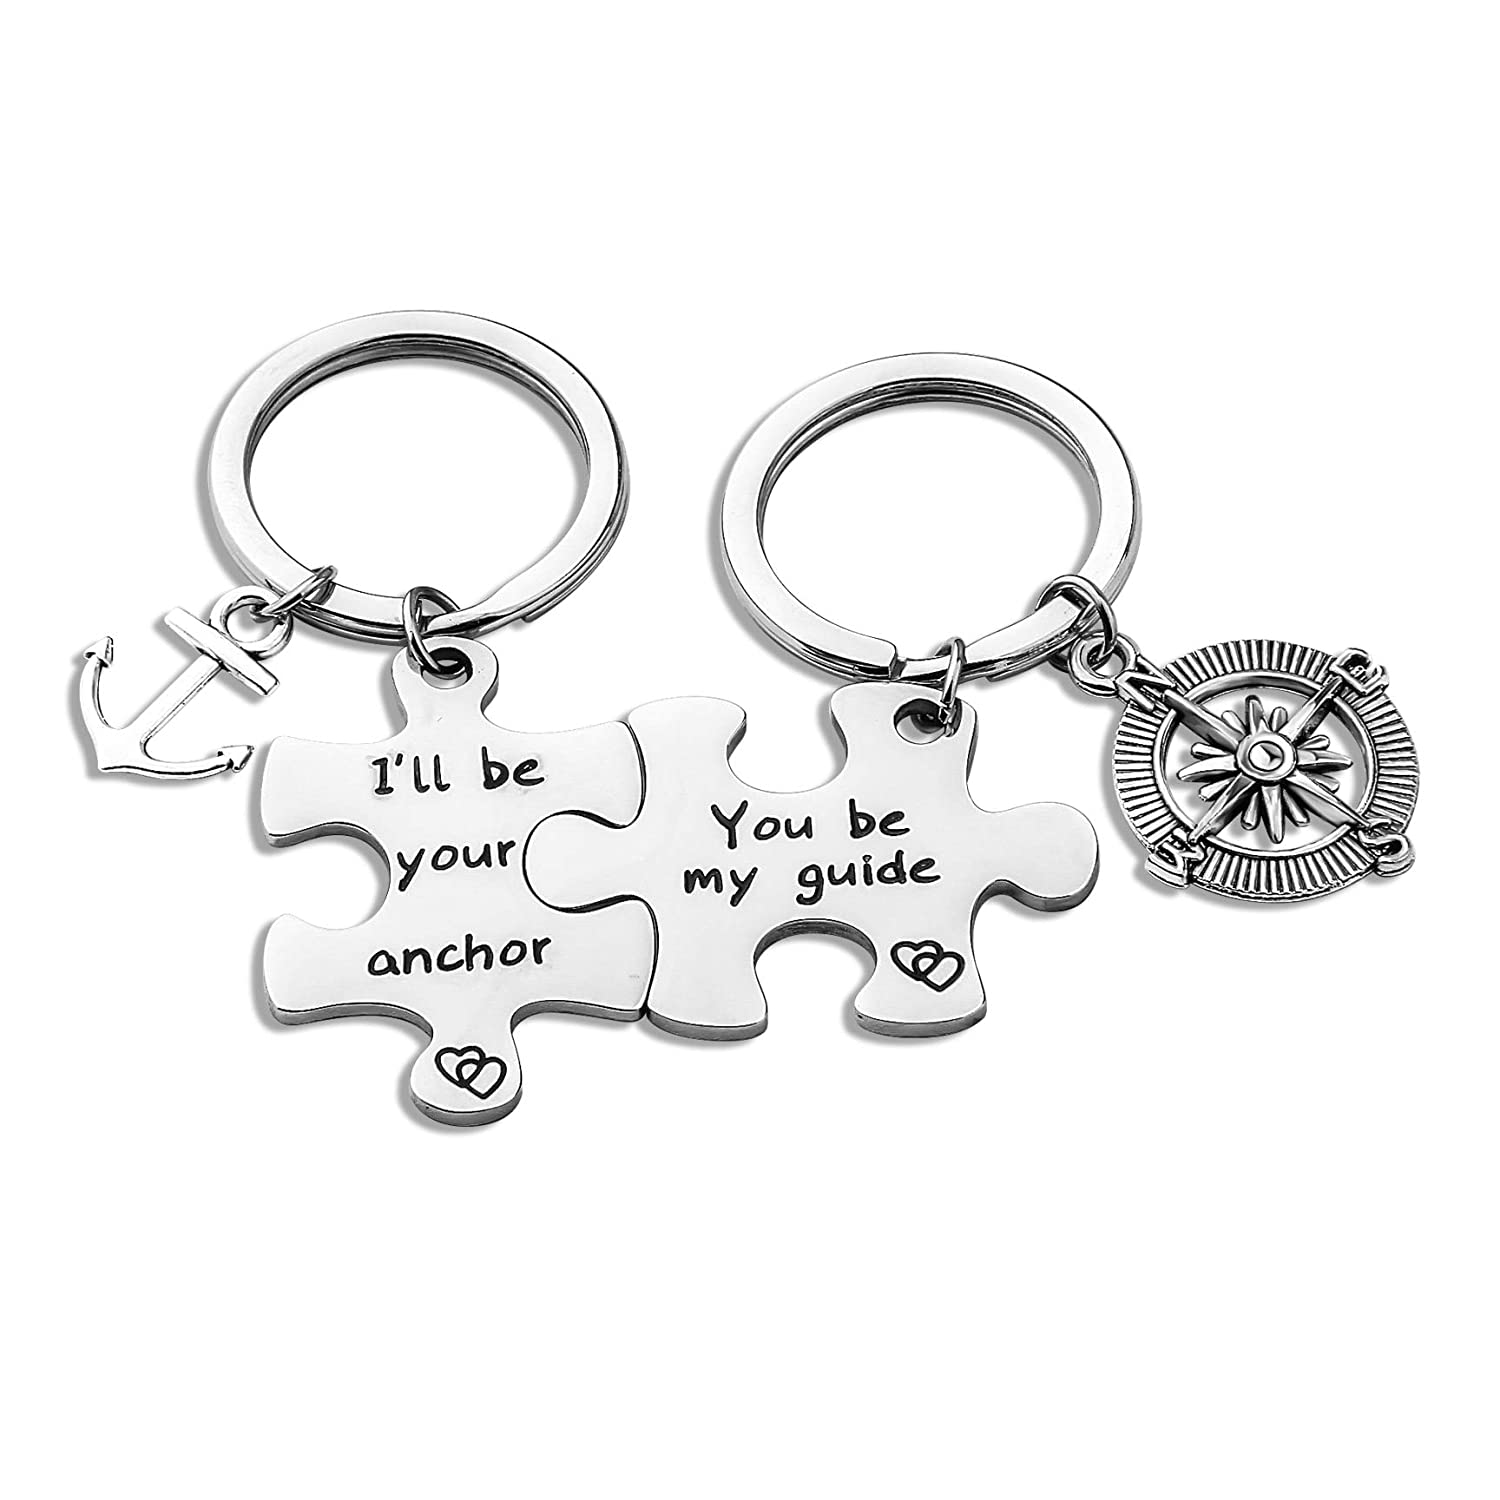 Zuo Bao Puzzle Keychain Valentines Day Anchor Compass Charm Keychains Set I'll Be Your Anchor You Be My Guide B07G9CP7HR_US